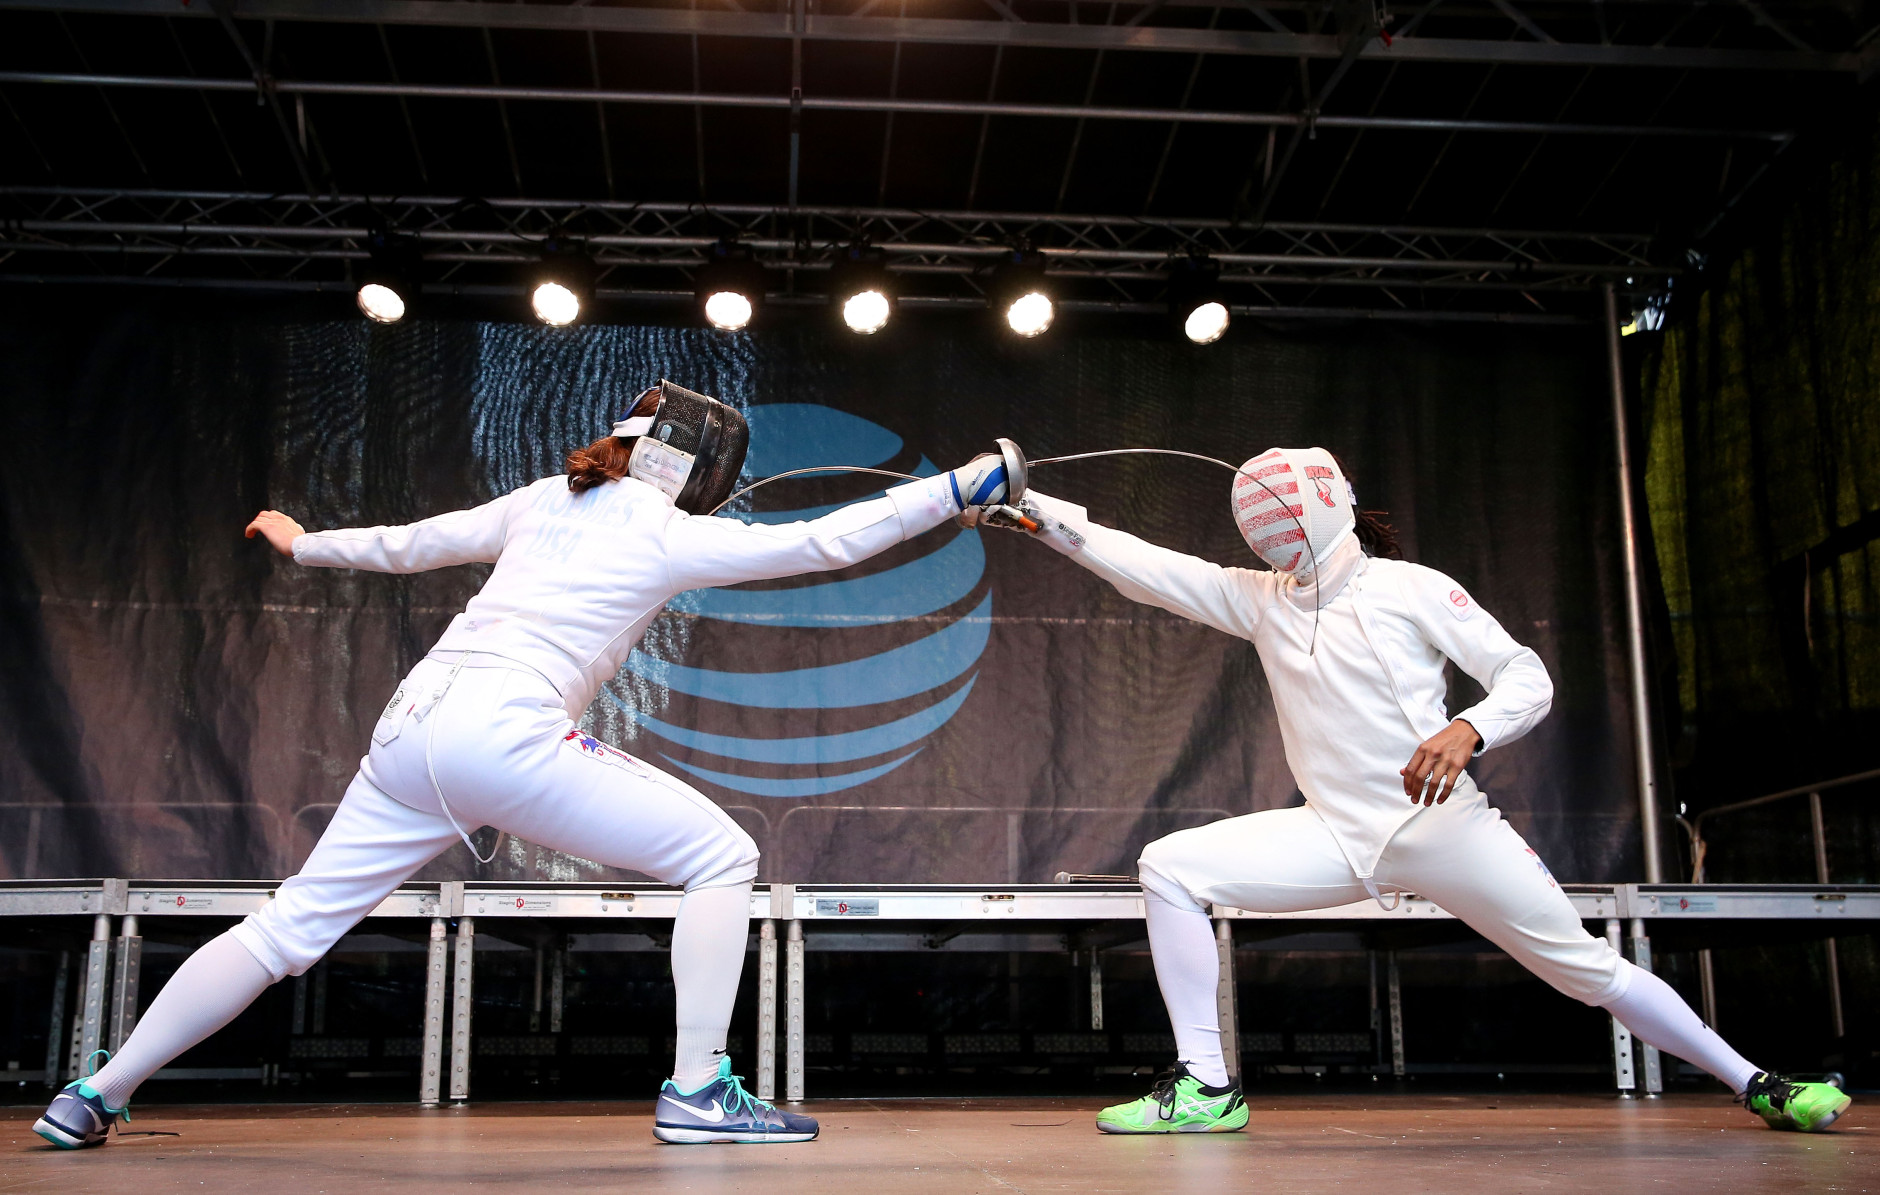 NEW YORK, NY - APRIL 27:  Jason Pryor and Kat Holmes take part in a fencing demonstration during Team USA's Road to Rio Tour presented by Liberty Mutual on April 27, 2016 in New York City. The event marks 100 days until the Opening Ceremony of the Rio 2016 Olympic Games.  (Photo by Ed Mulholland/Getty Images for USOC)